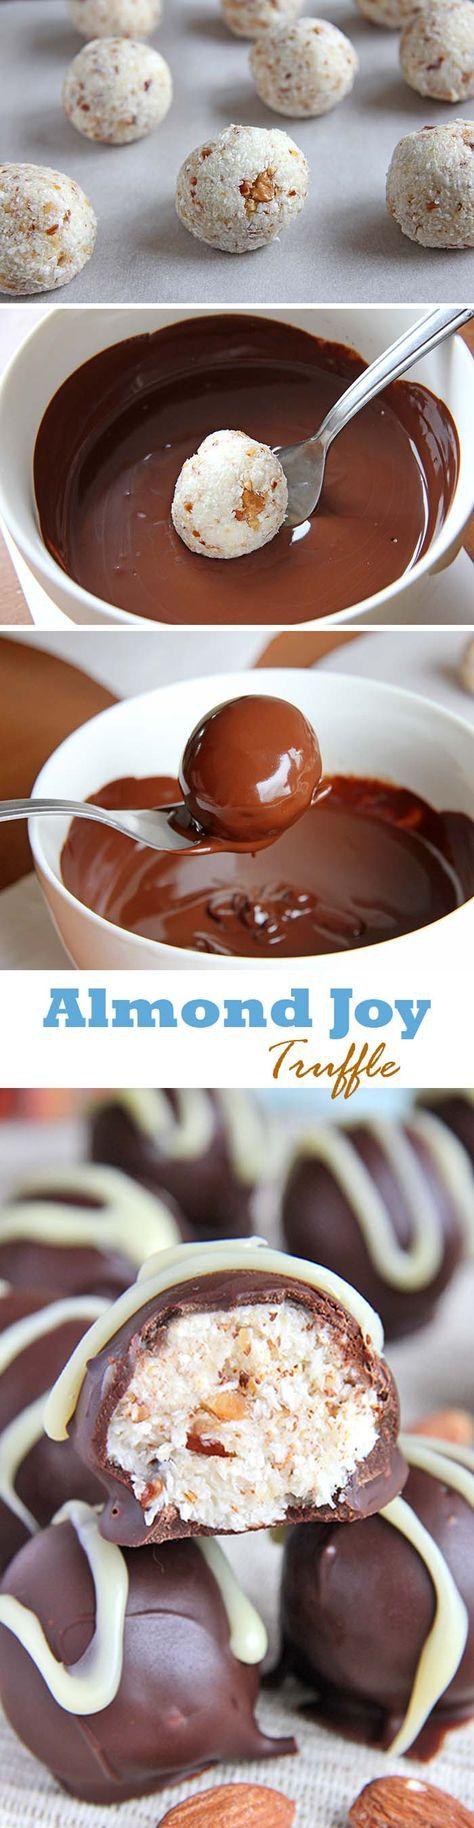 Truffles that tastes just like the Almond Joy candy bar! Your family and friends are sure to love them. #almondjoy #truffle #homemade